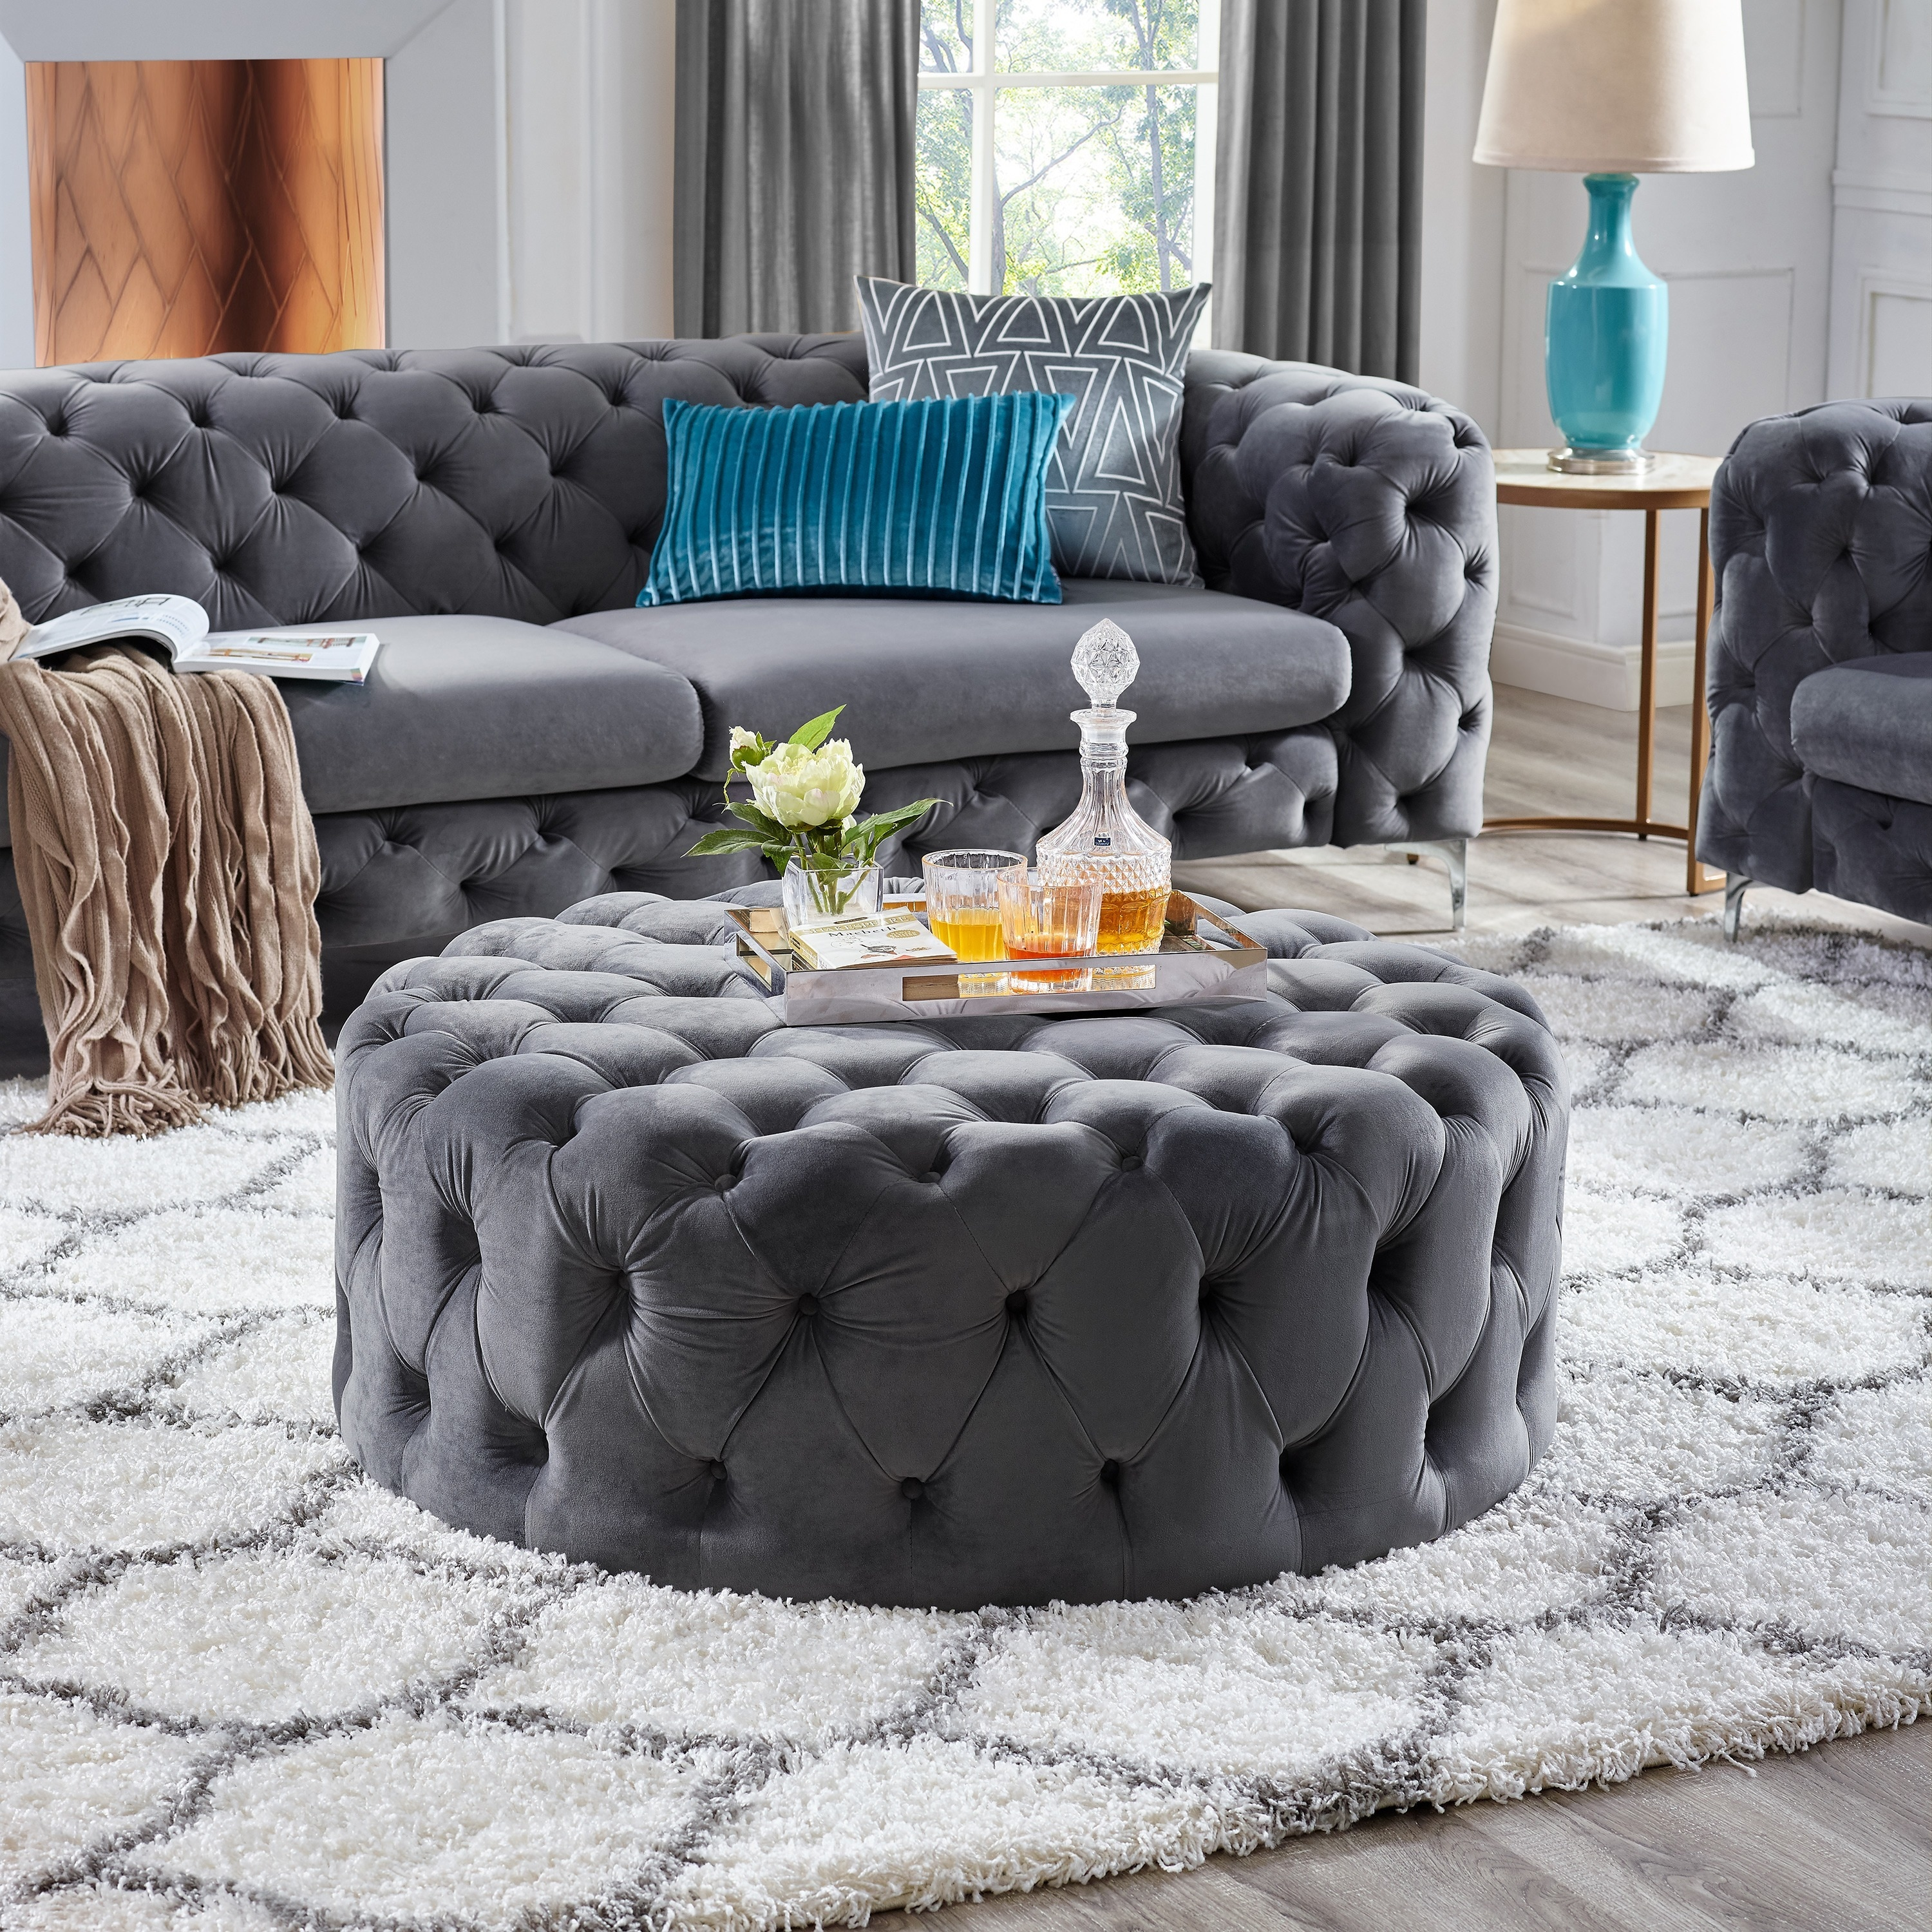 Shop corvus tufted velvet round ottoman with casters free shipping today overstock com 19755828